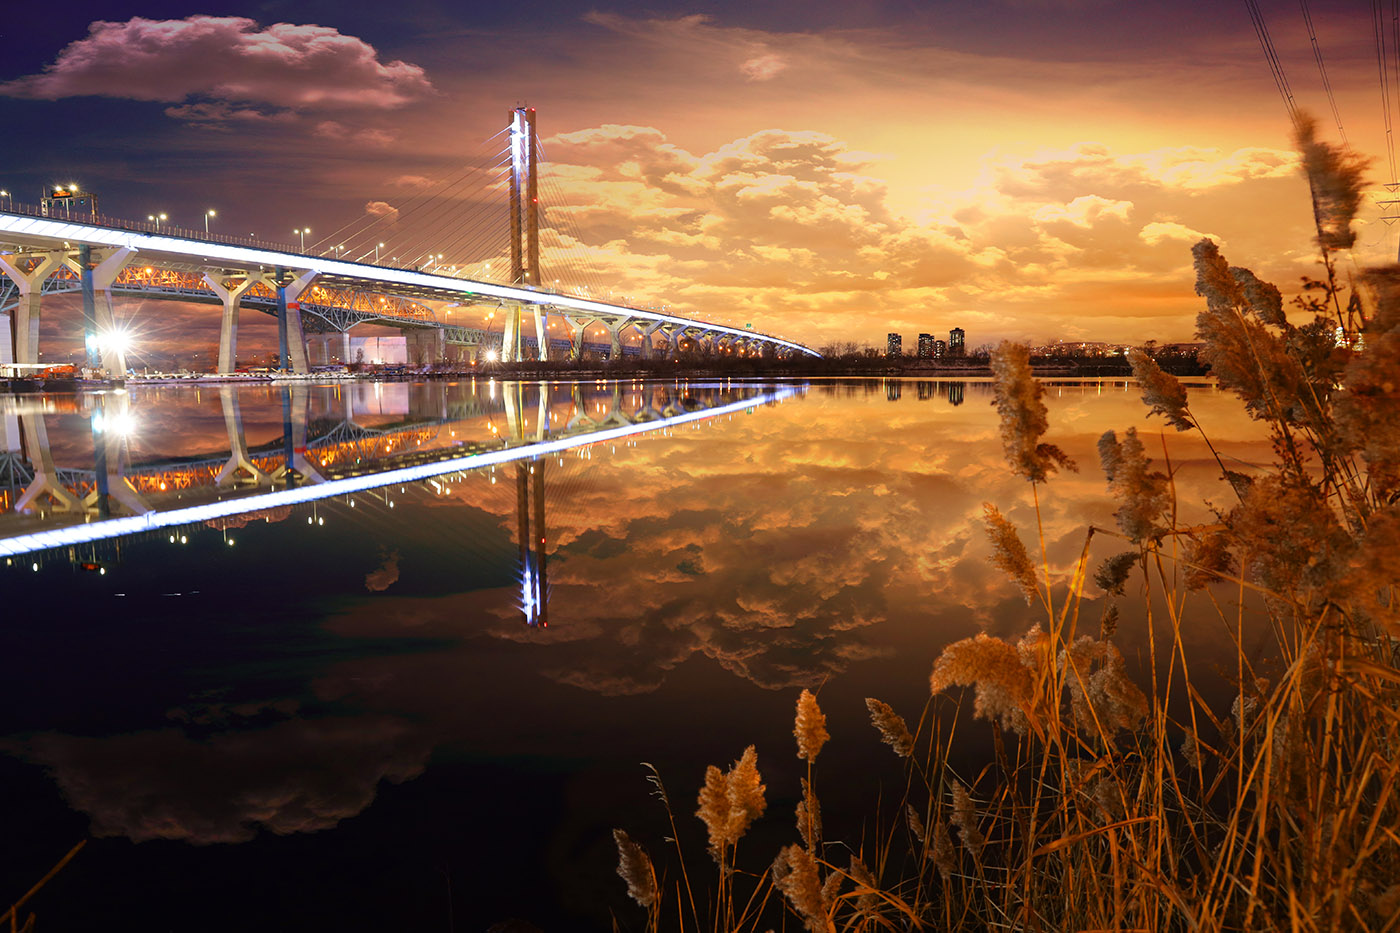 New Champlain Bridge in Montreal City 1 - Stock Photos, Pictures & Images